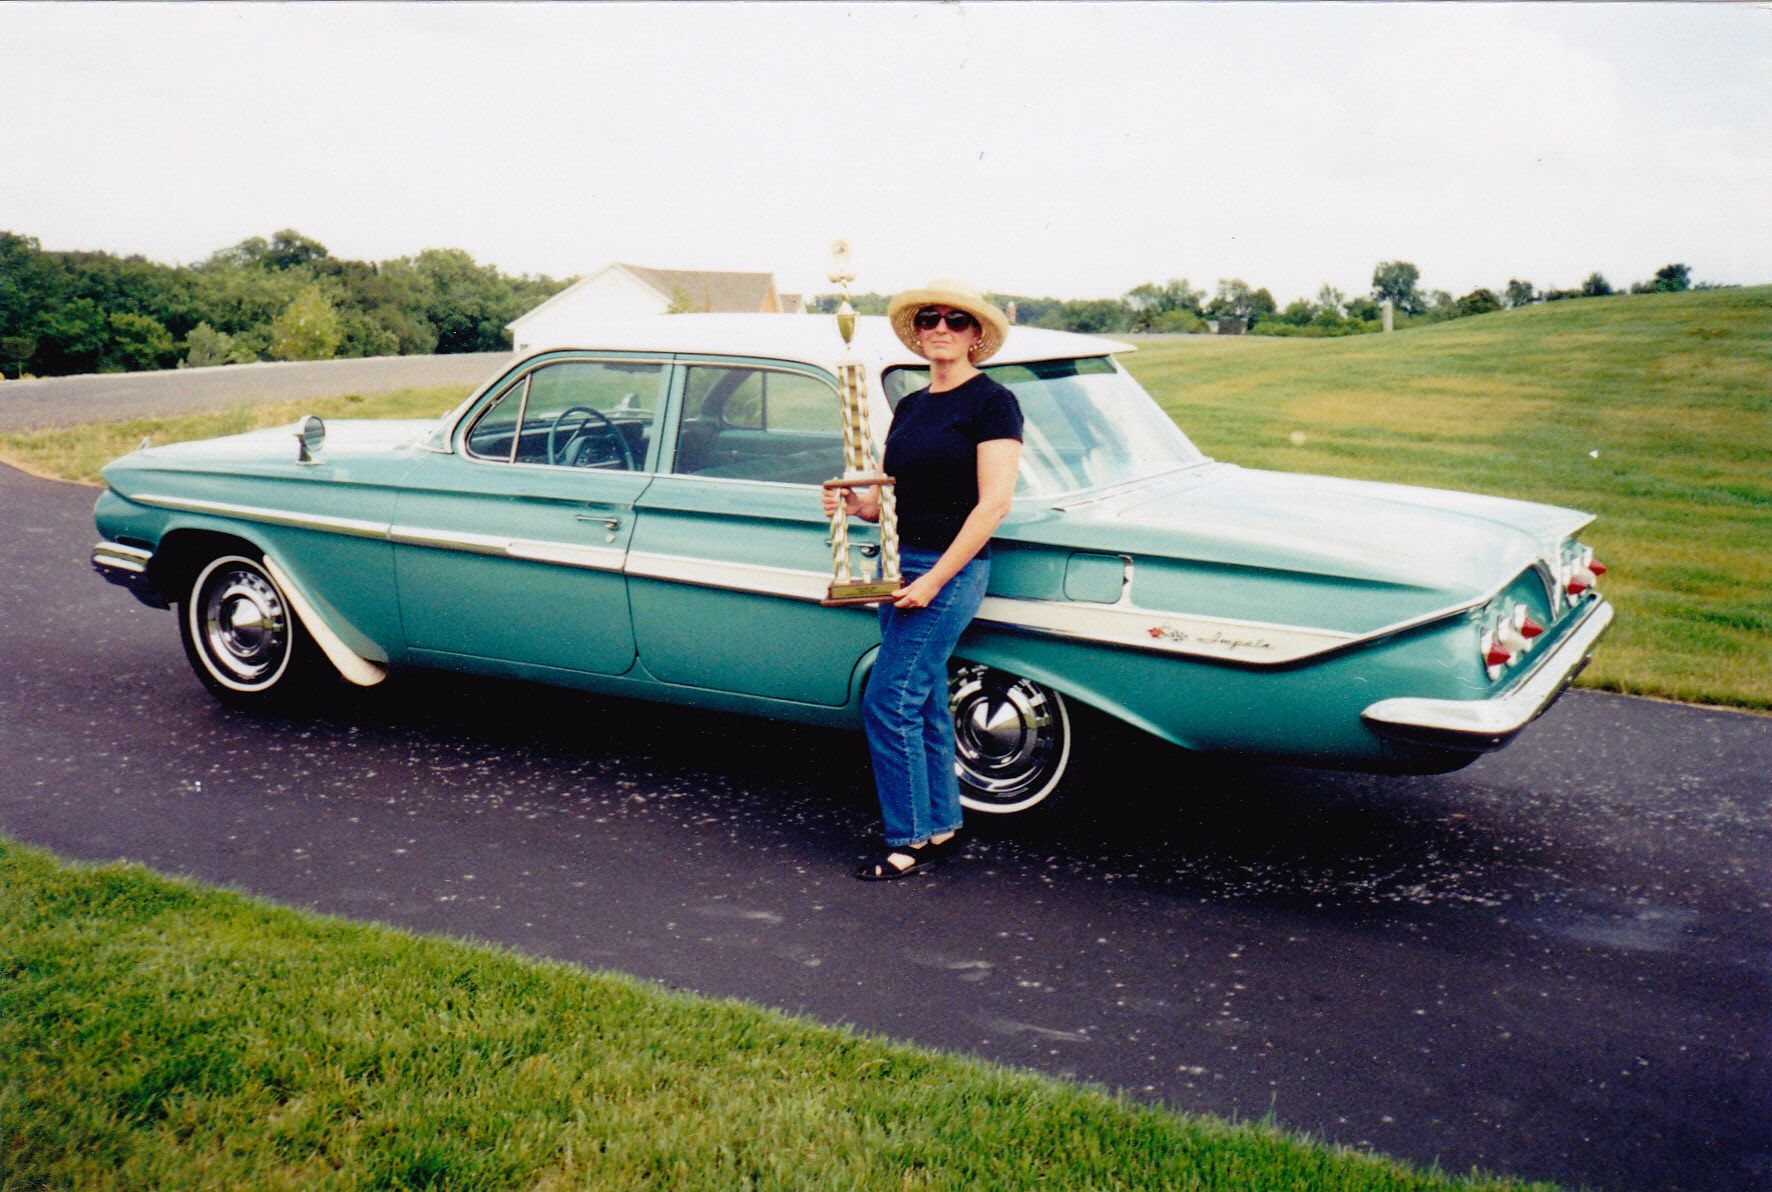 Miss my beautiful 1961 Chevy. Won second place with her.